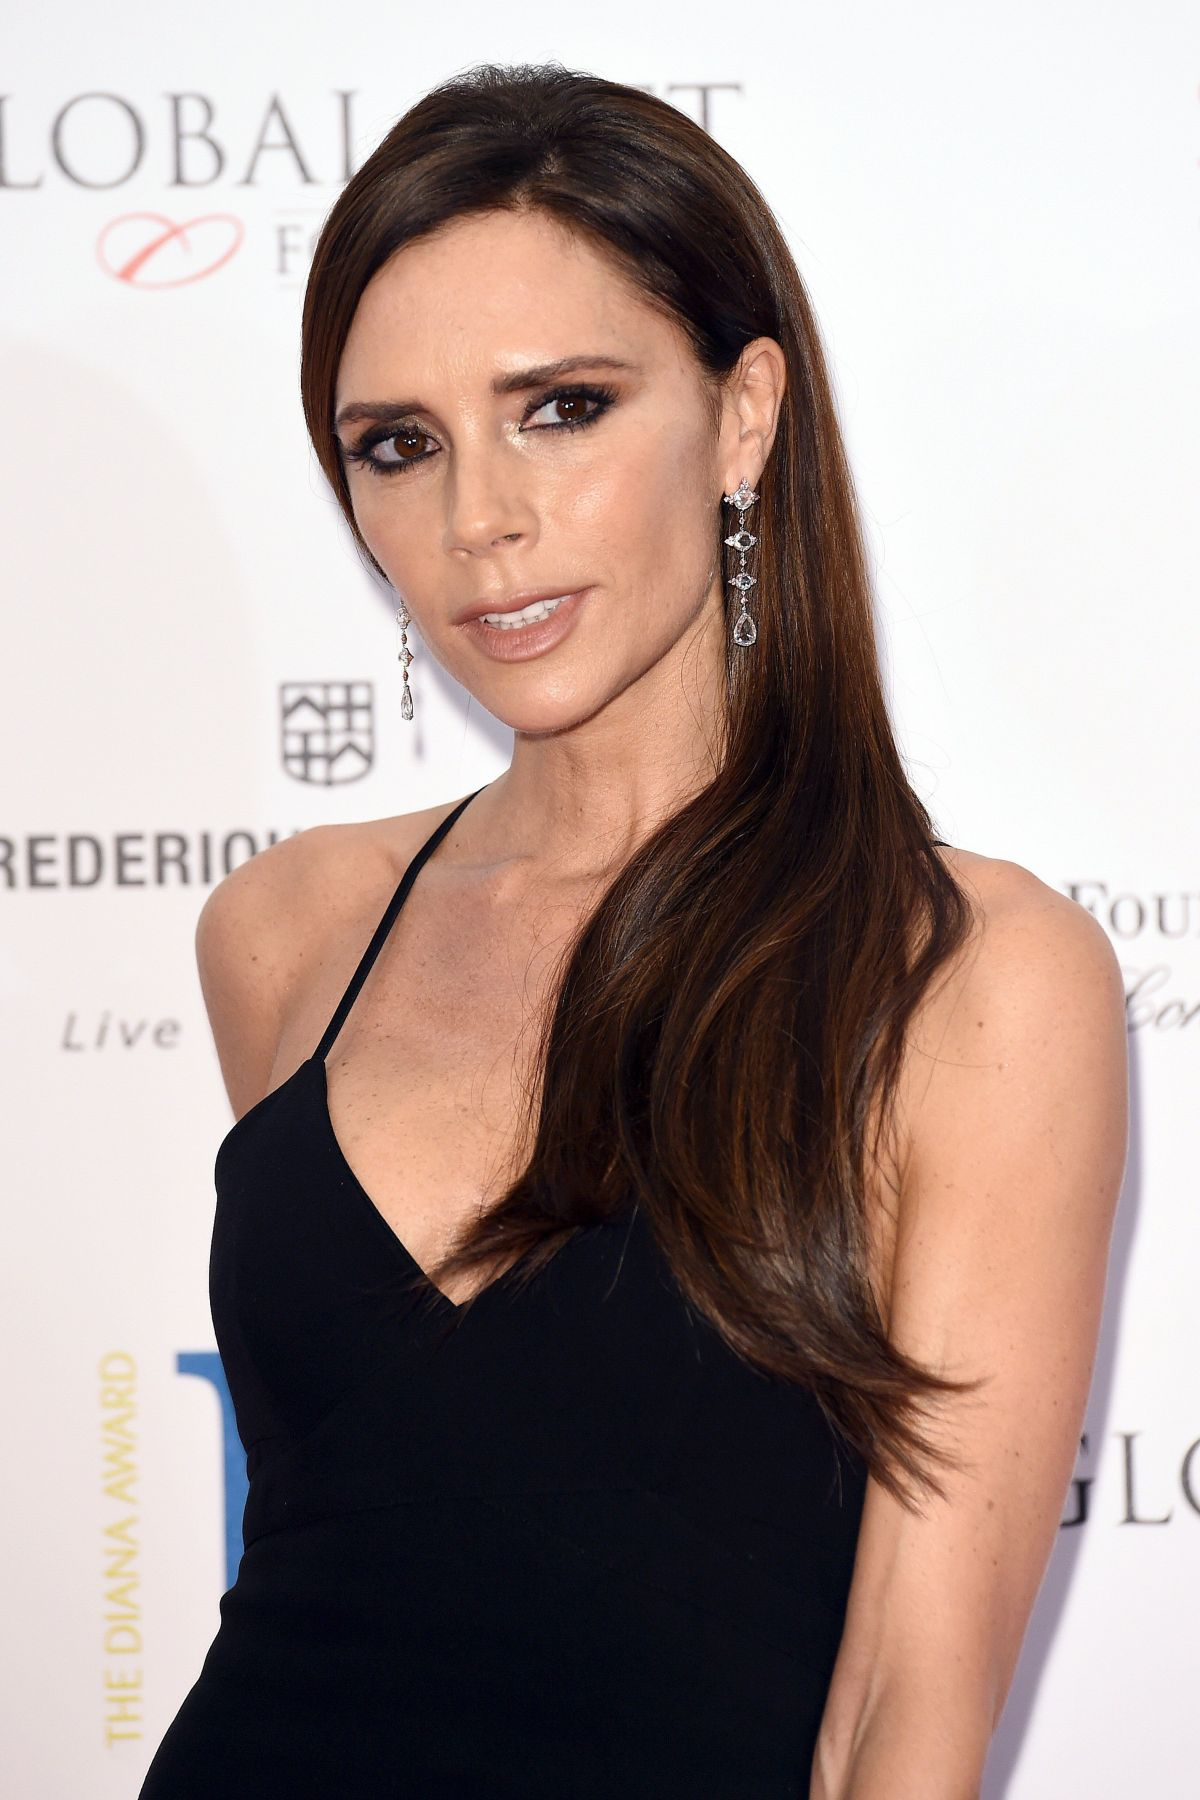 VICTORIA BECKHAM at 2015 Global Gift Gala in London ... Victoria Beckham